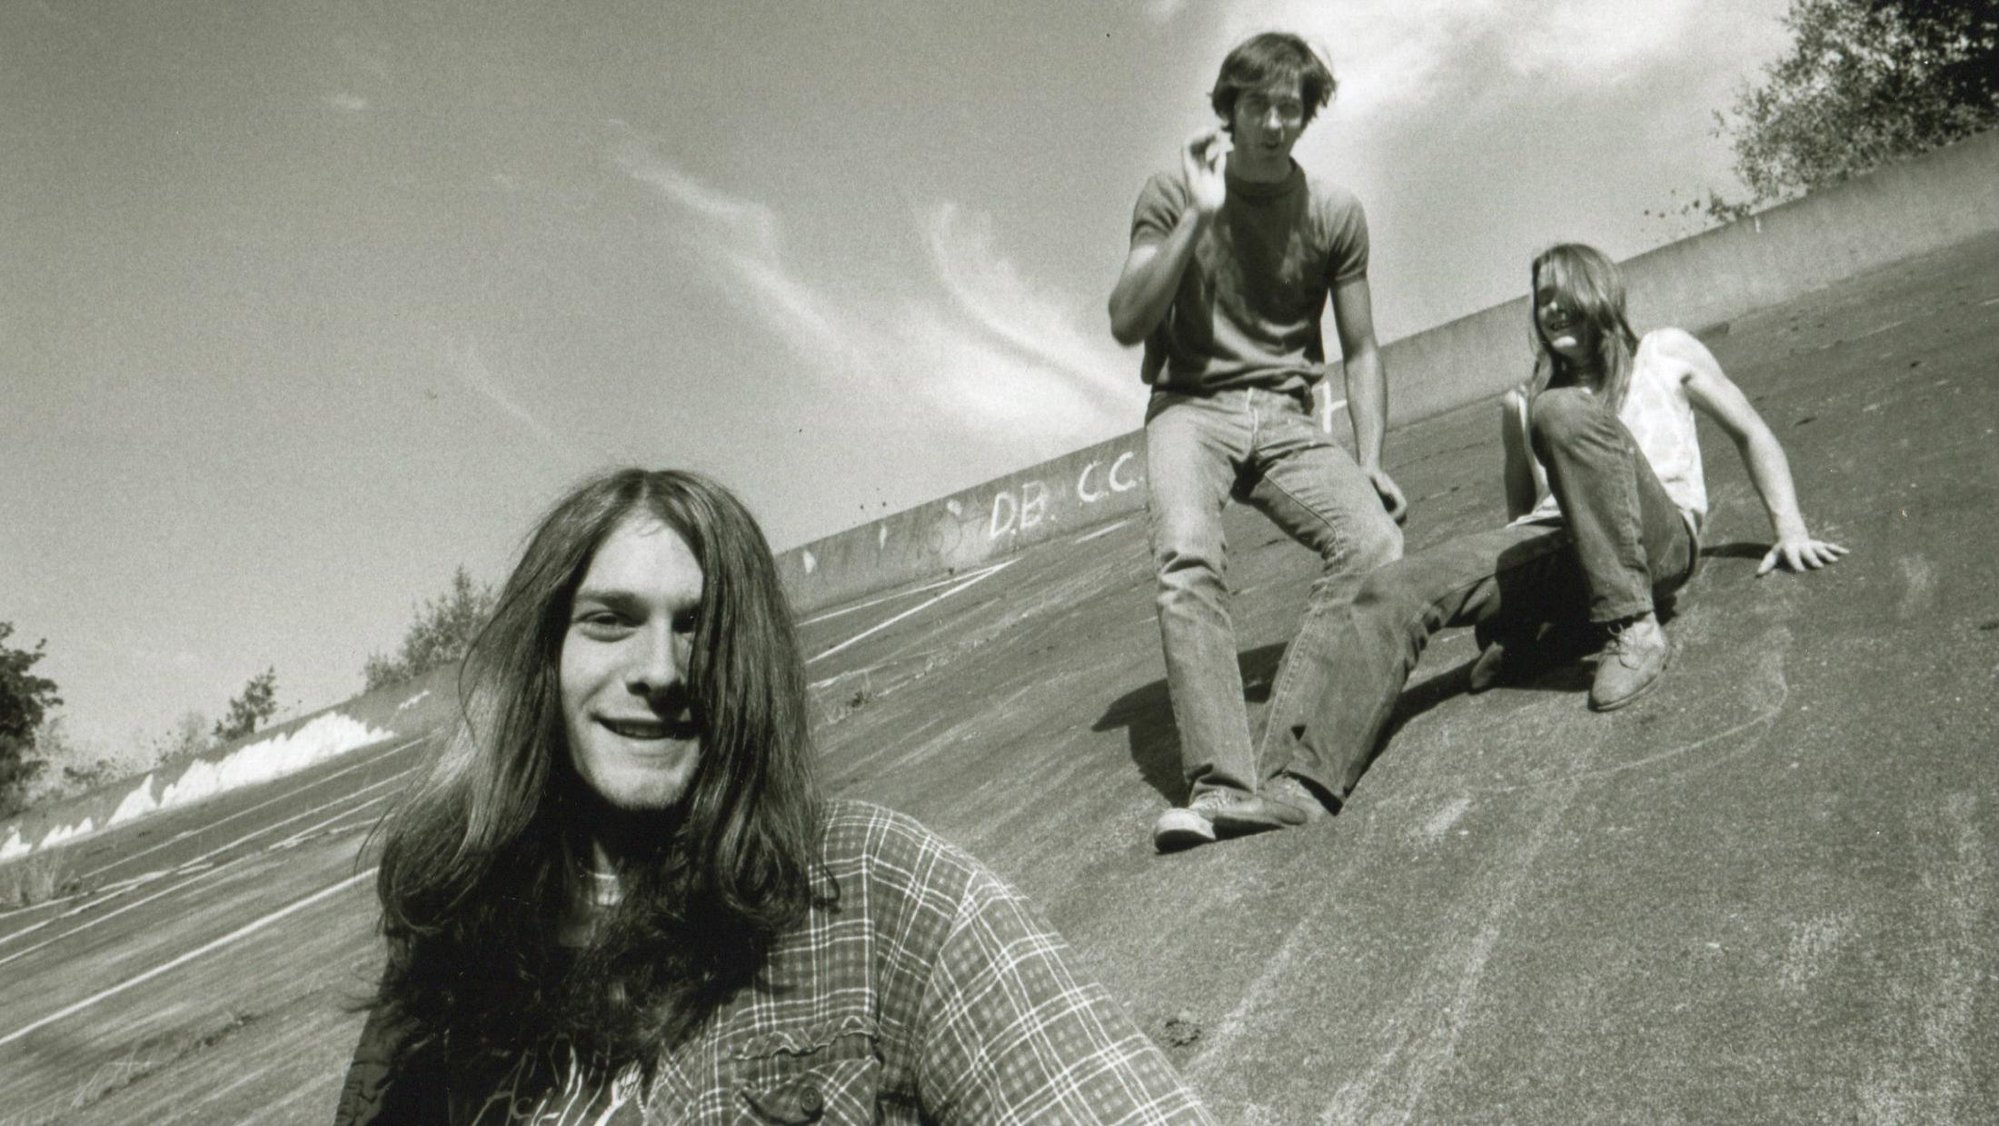 three guys with long hair and jeans smiling and sitting on a slope of cement